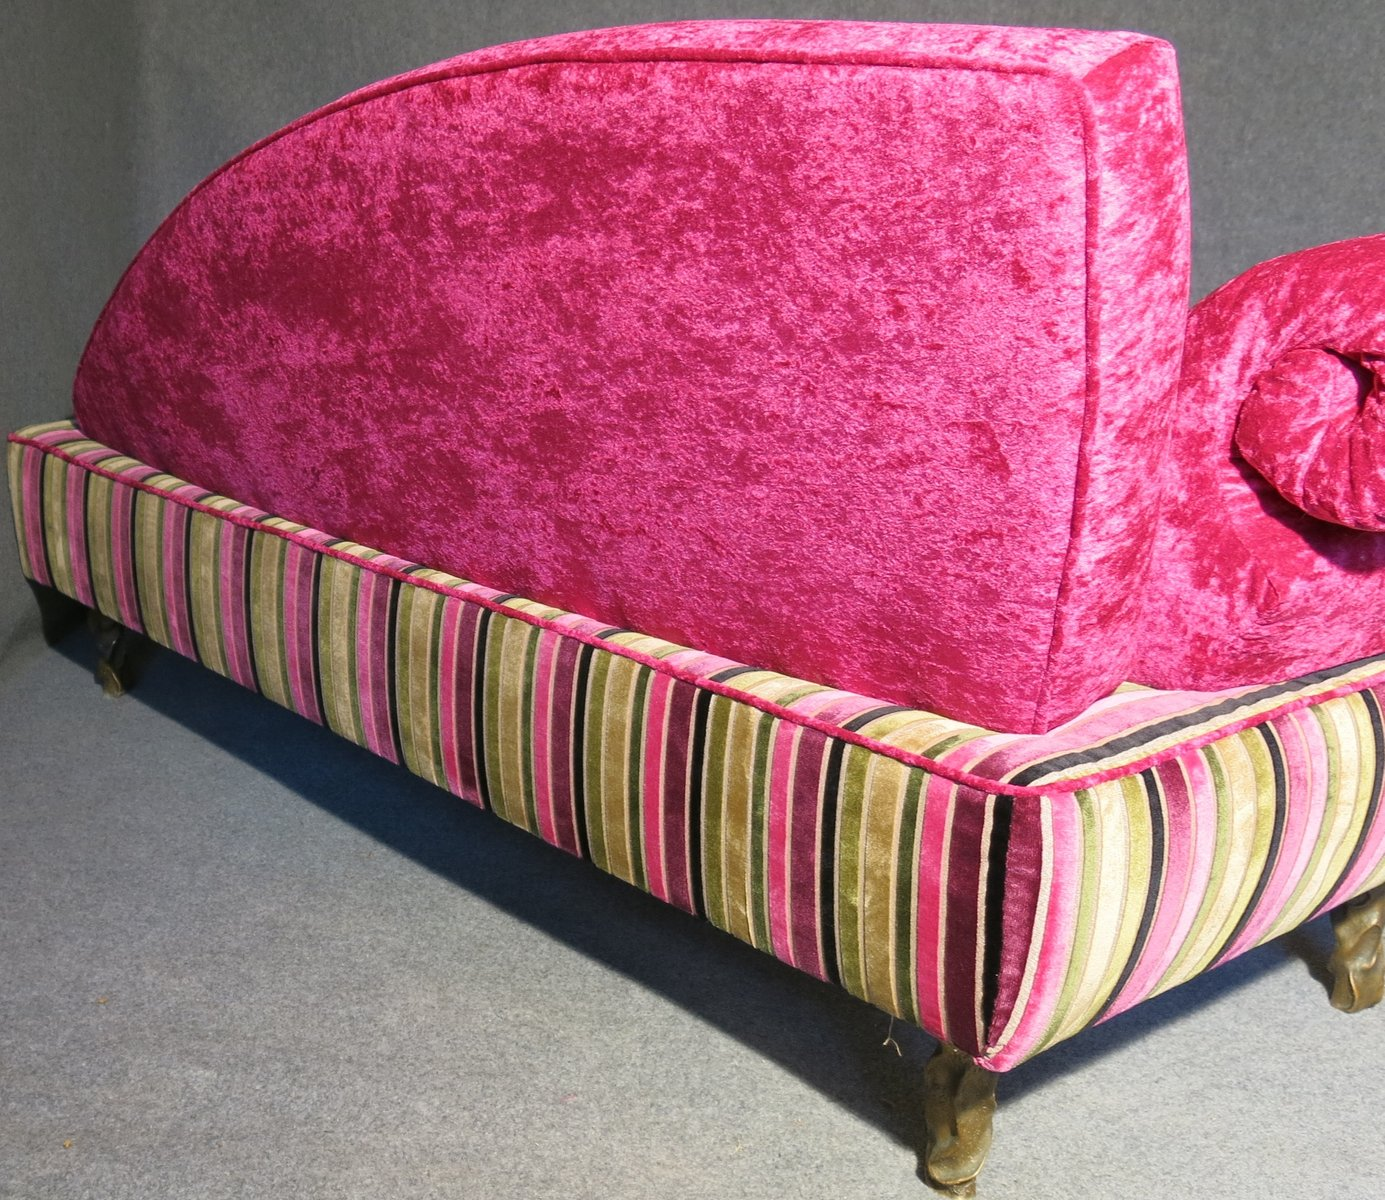 pink italian art deco velvet chaise lounge for sale at pamono - pink italian art deco velvet chaise lounge   price per piece